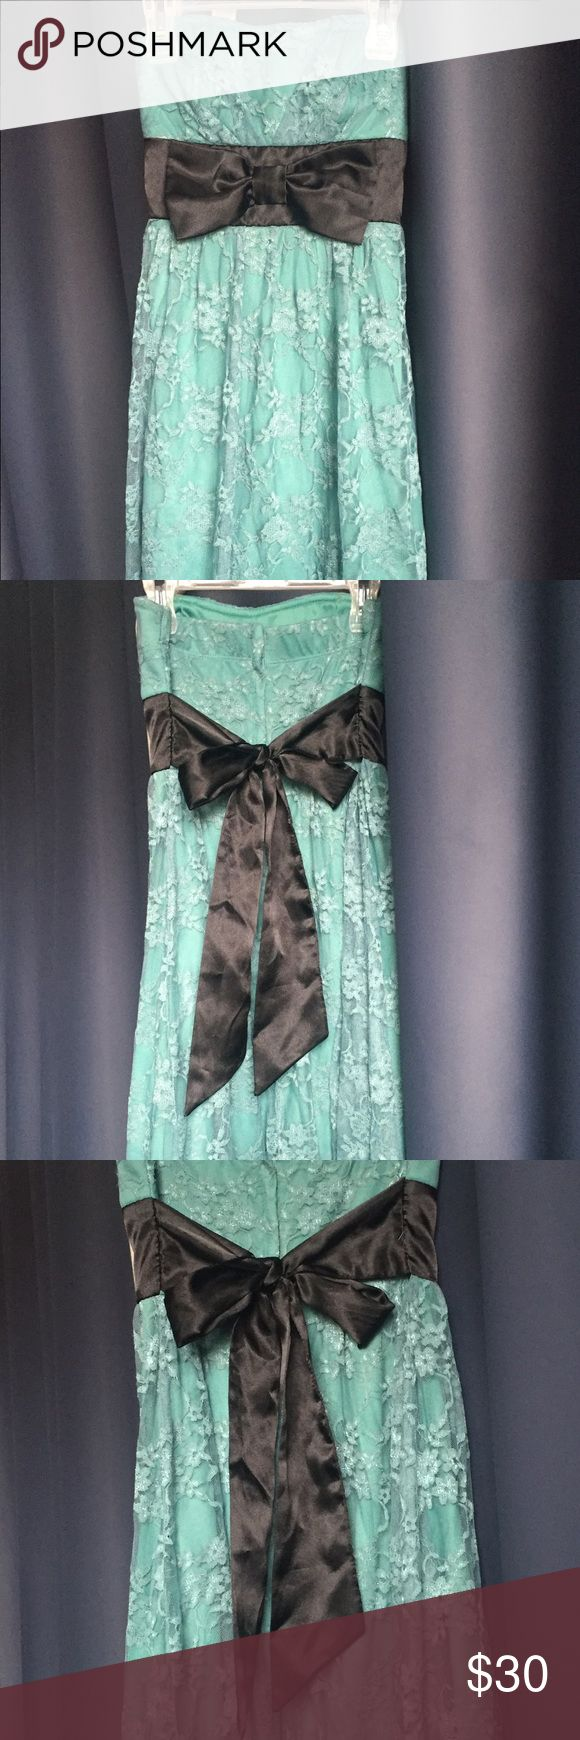 Juniors a strapless turquoise lace dress Juniors strapless turquoise lace dress. 92% nylon, 8% spandex, black polyester bow, 100% polyester lining. Speechless Dresses